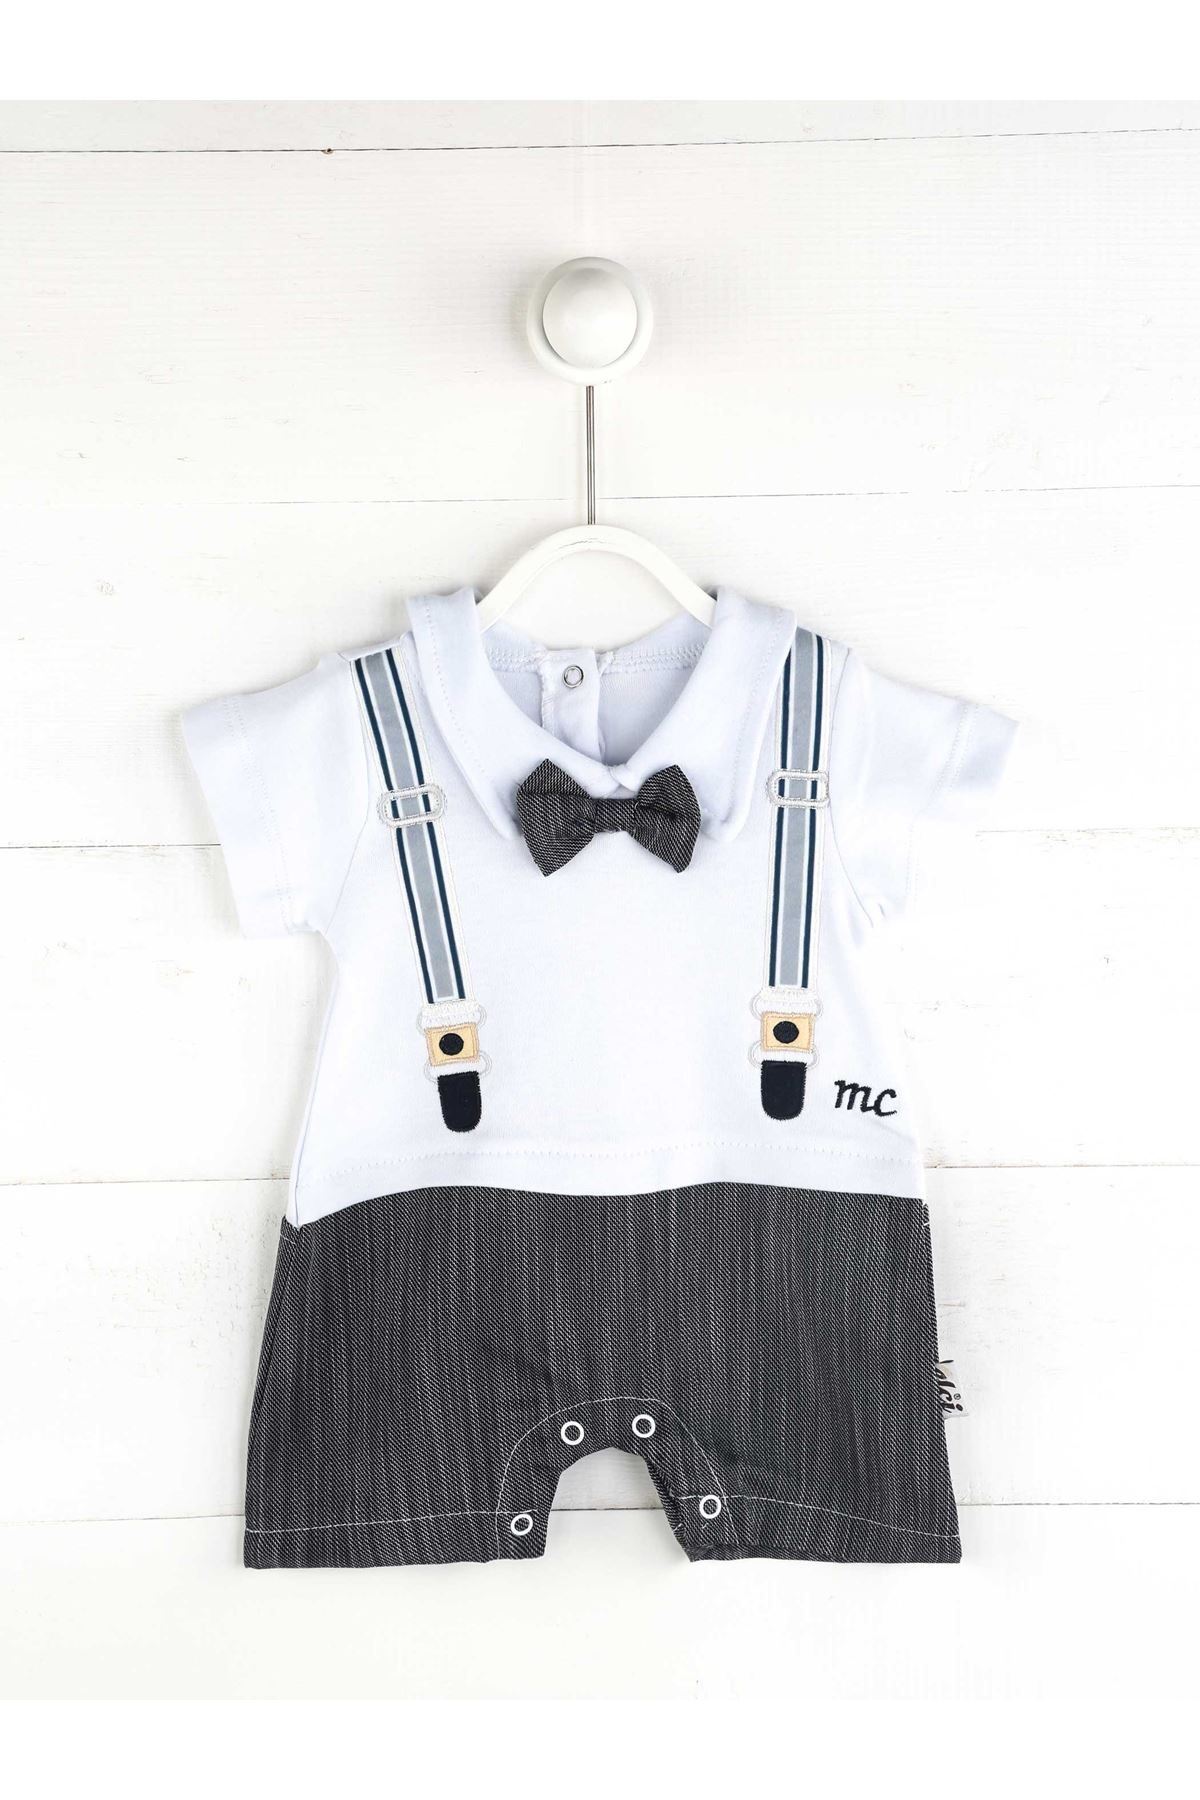 Baby shorts gentleman boys bow tie overalls suit 100% cotton bottom closure feature cute handsome babies models